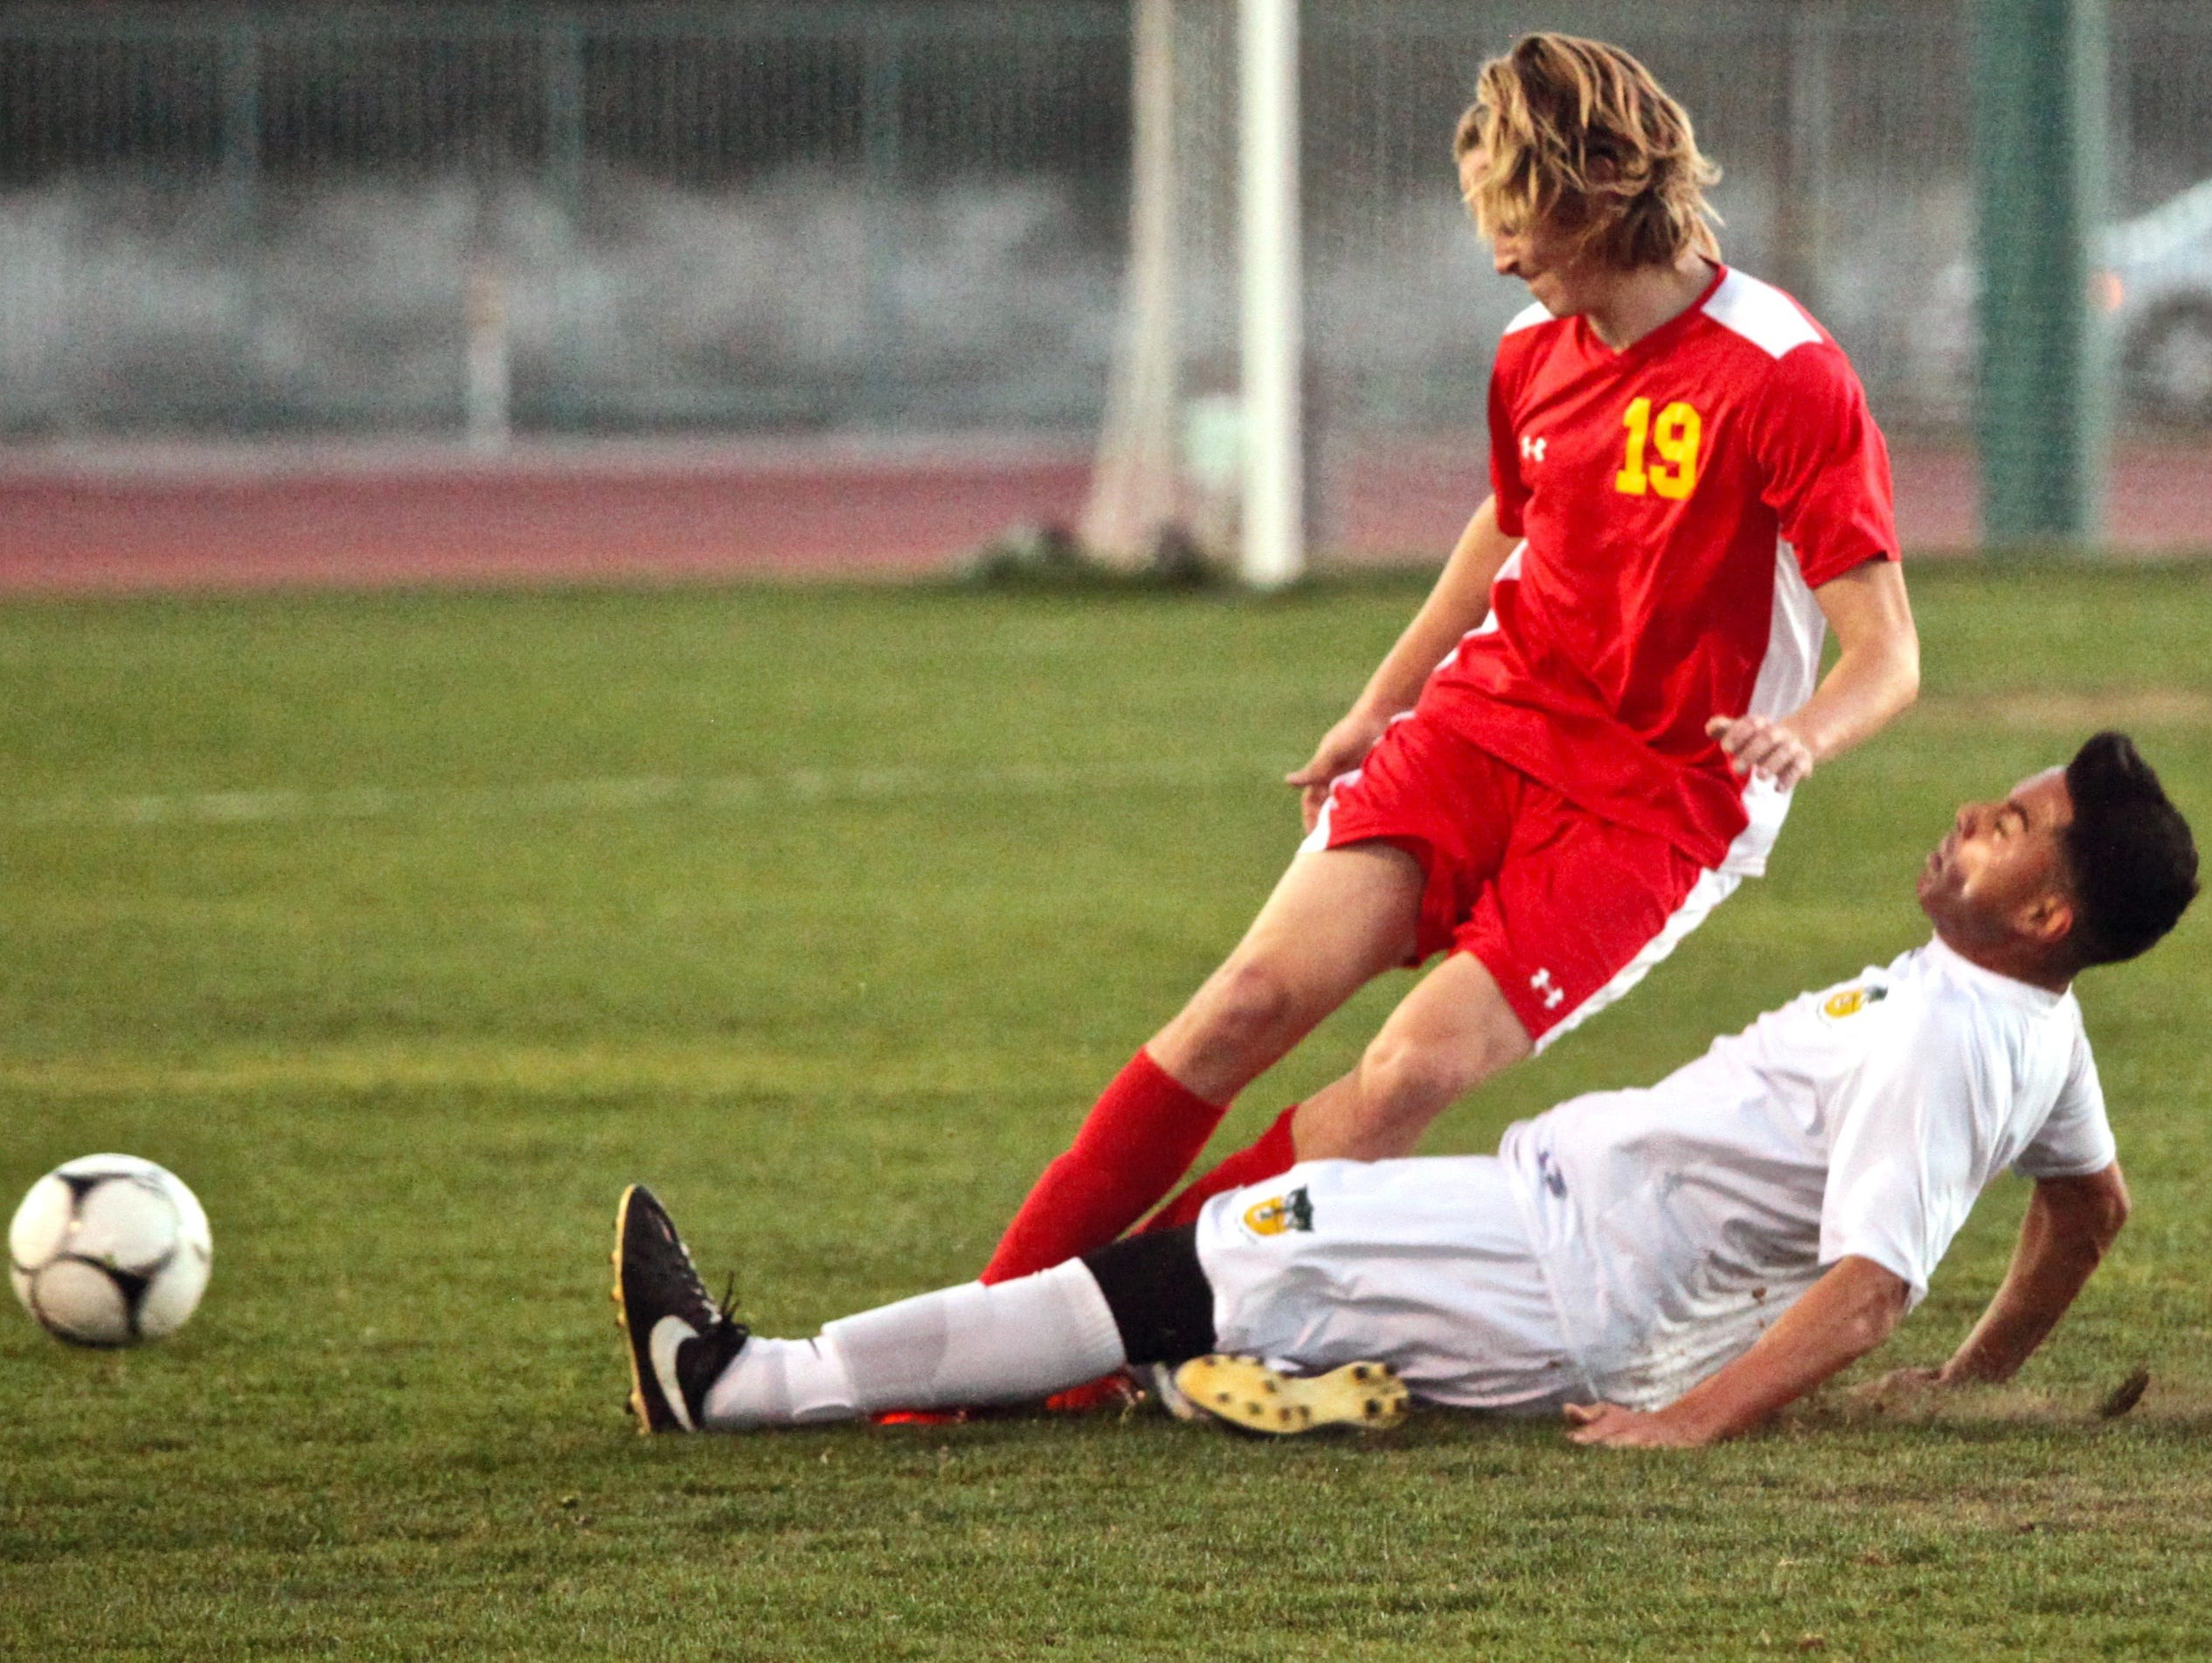 Coachella Valley's Jose Castanos (9) tackles Palm Desert's Gavin Kirk (19) during a match in Thermal on Tuesday.